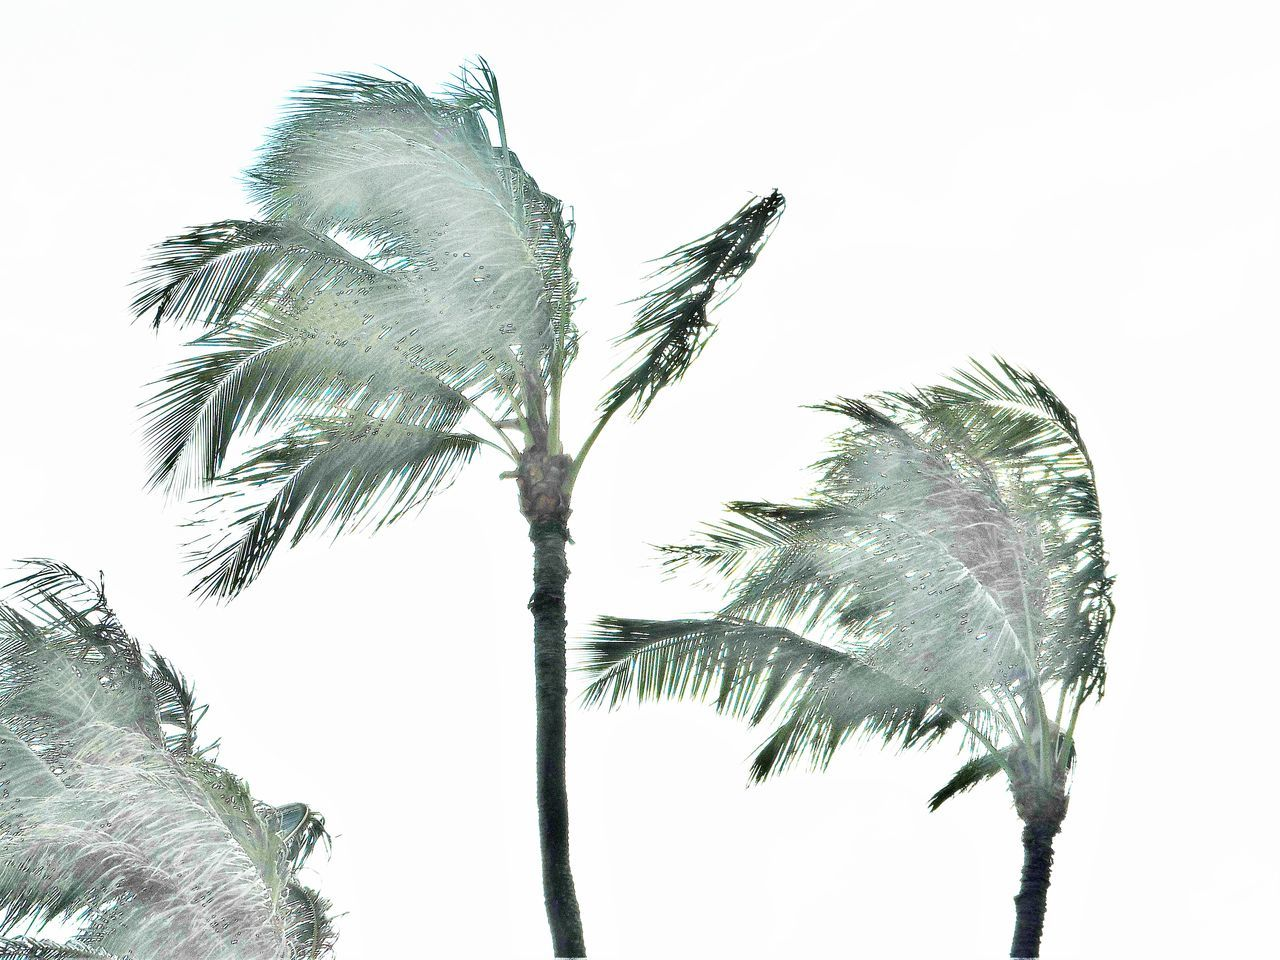 Storm Winds Blowing Coconut Palm Trees Against Clear Sky